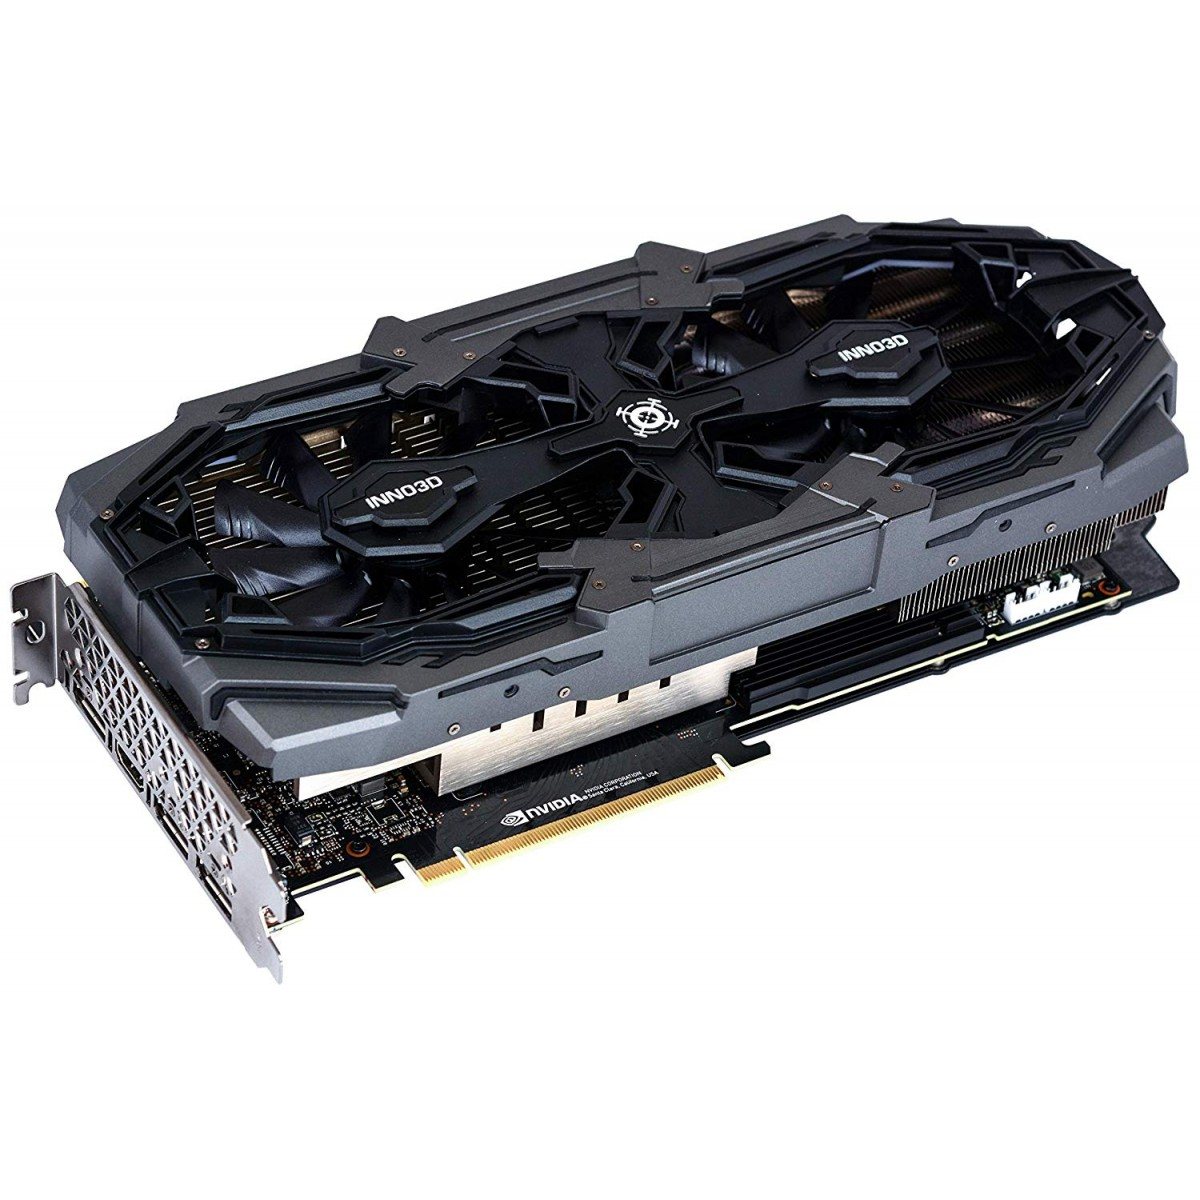 Placa de Vídeo Inno3D GeForce RTX 2070 Super Gaming OC X2, 8GB GDDR6, 256Bit, N207S2-08D6X-1780VA18